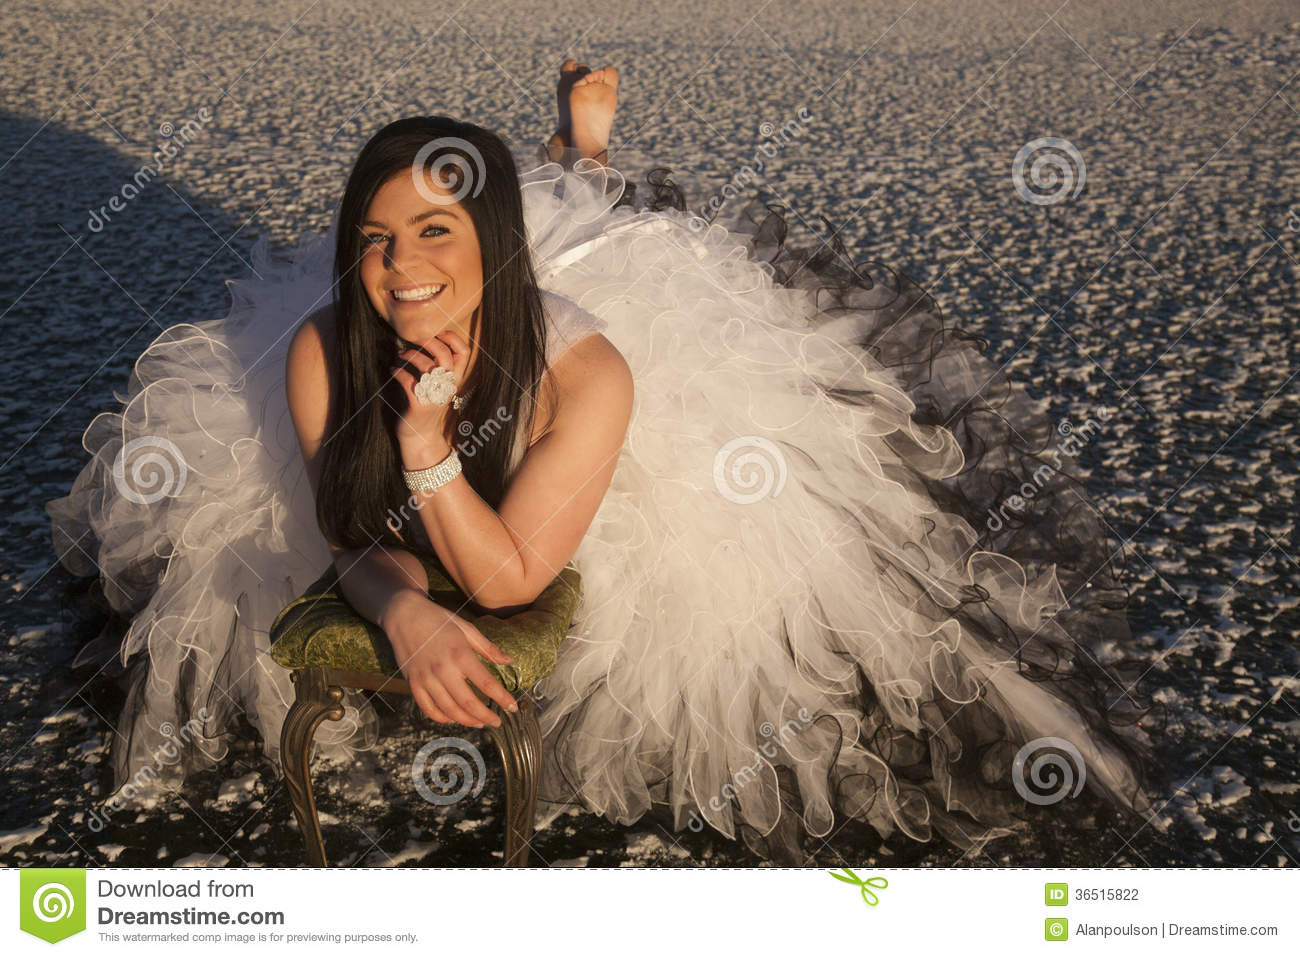 Woman Formal Dress Ice Barefoot Lay Smile Stock Photography Image 36515822